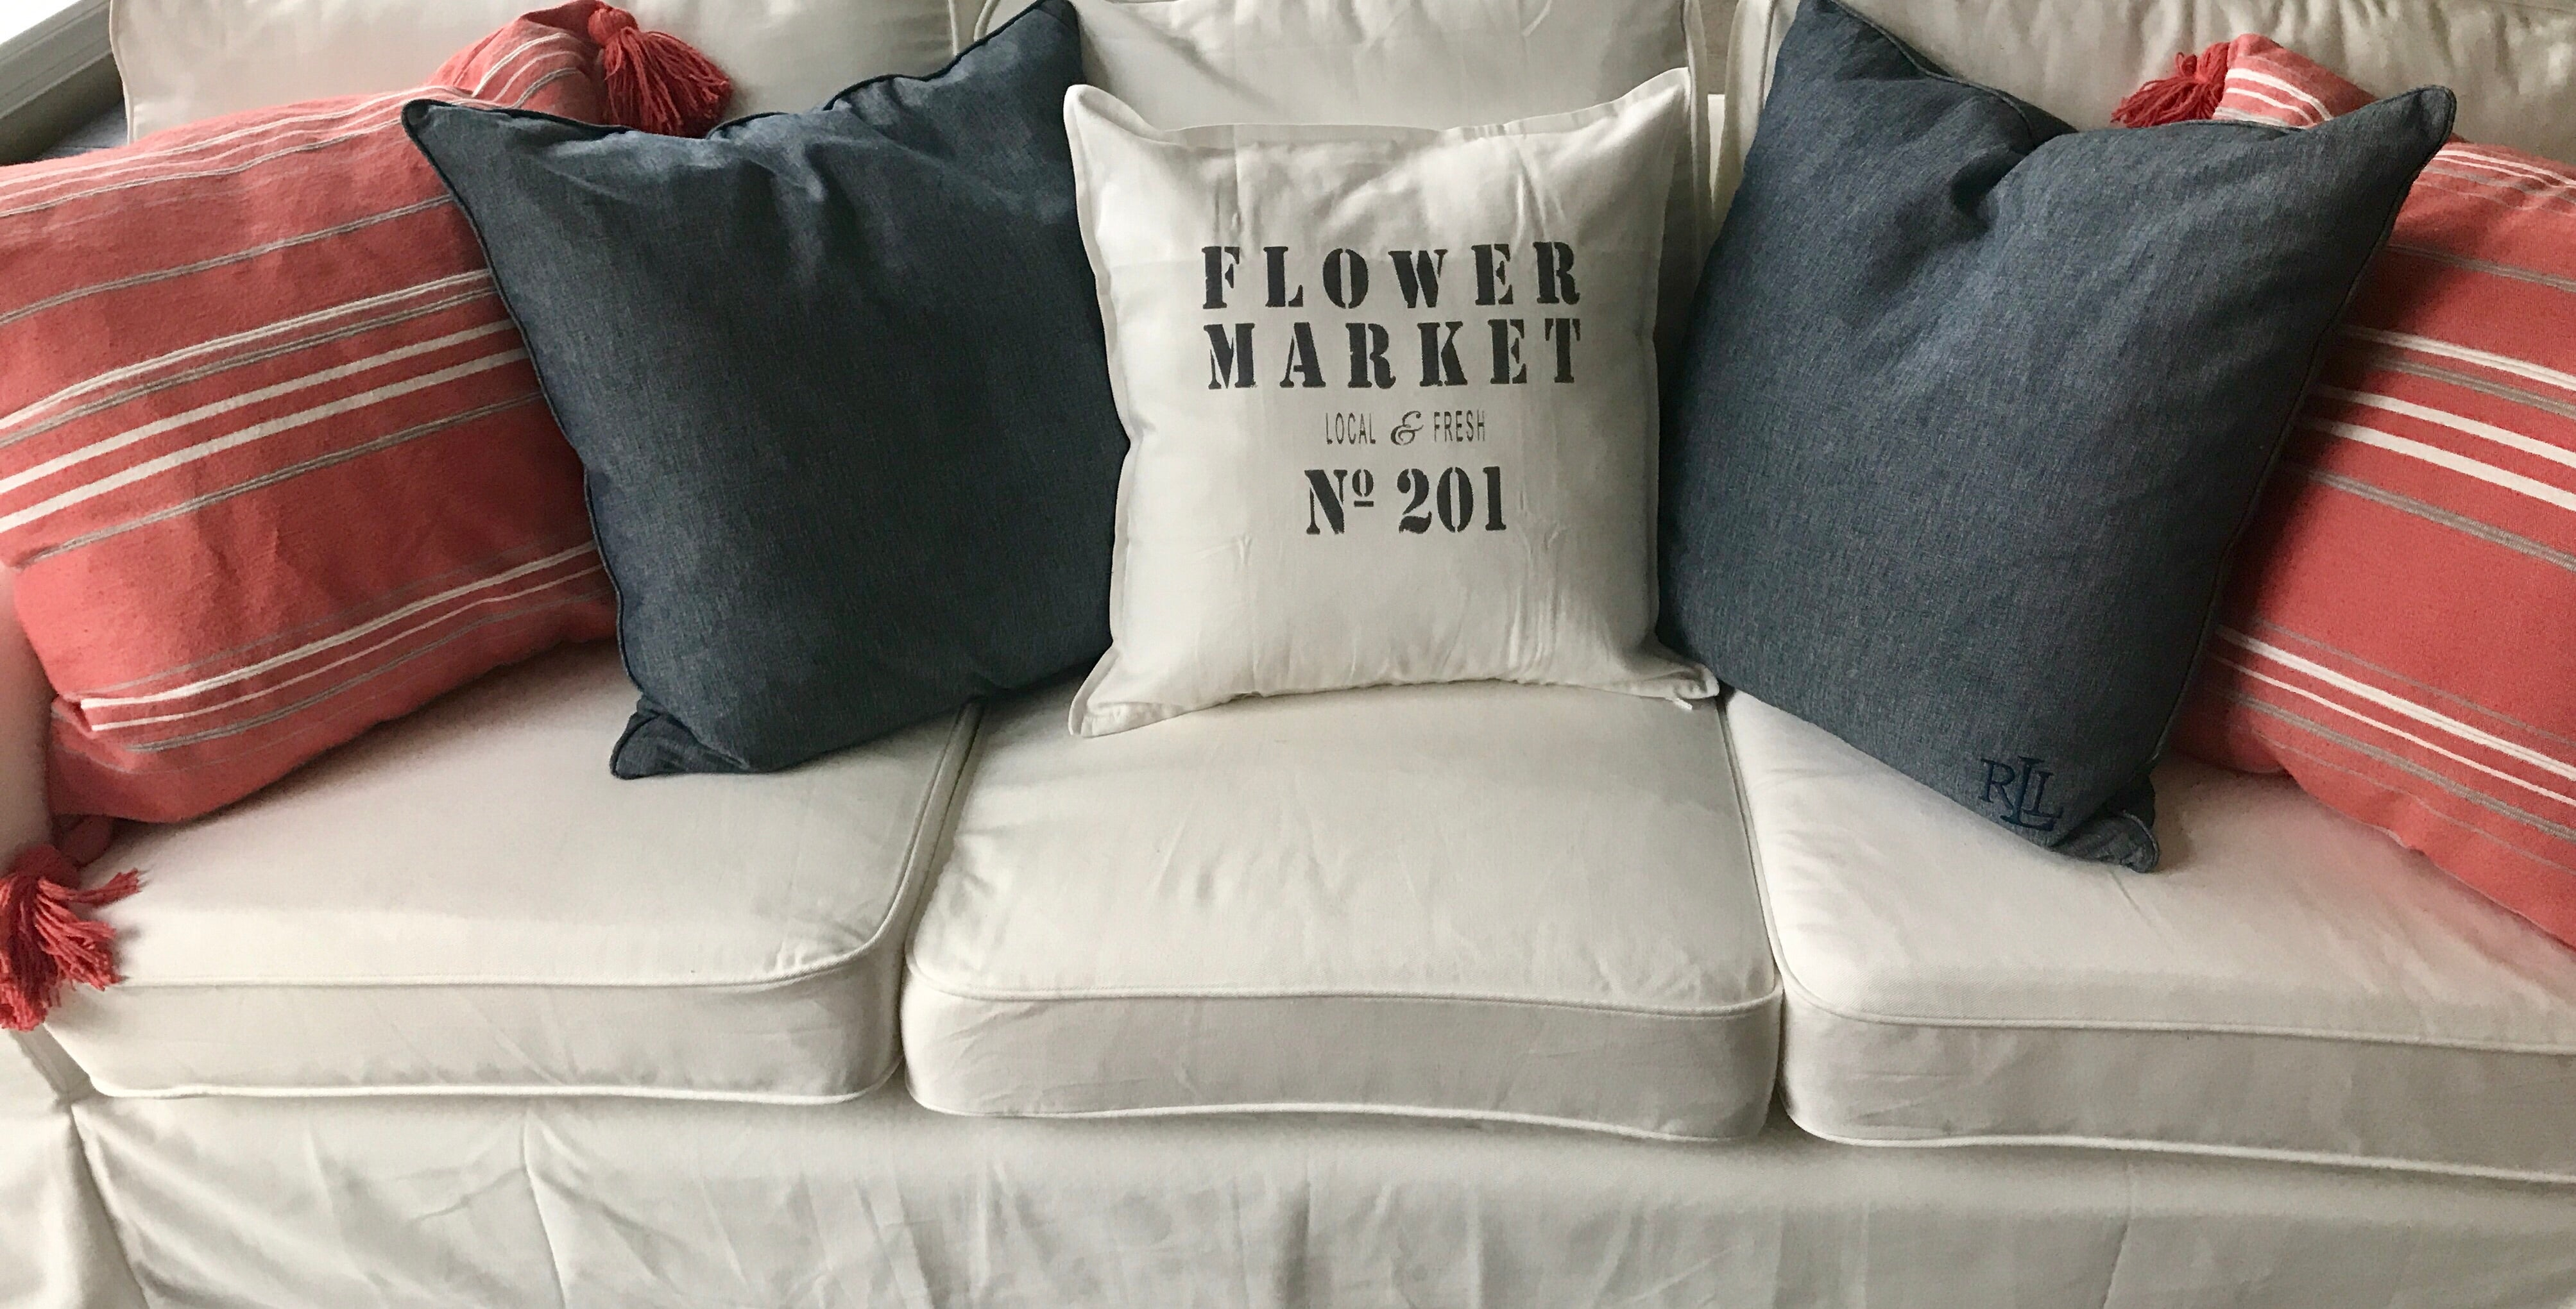 style farmhouse colors decor listing cream il and gray cover flowers upper floral fullxfull covers pillow fixer neutral pjwt